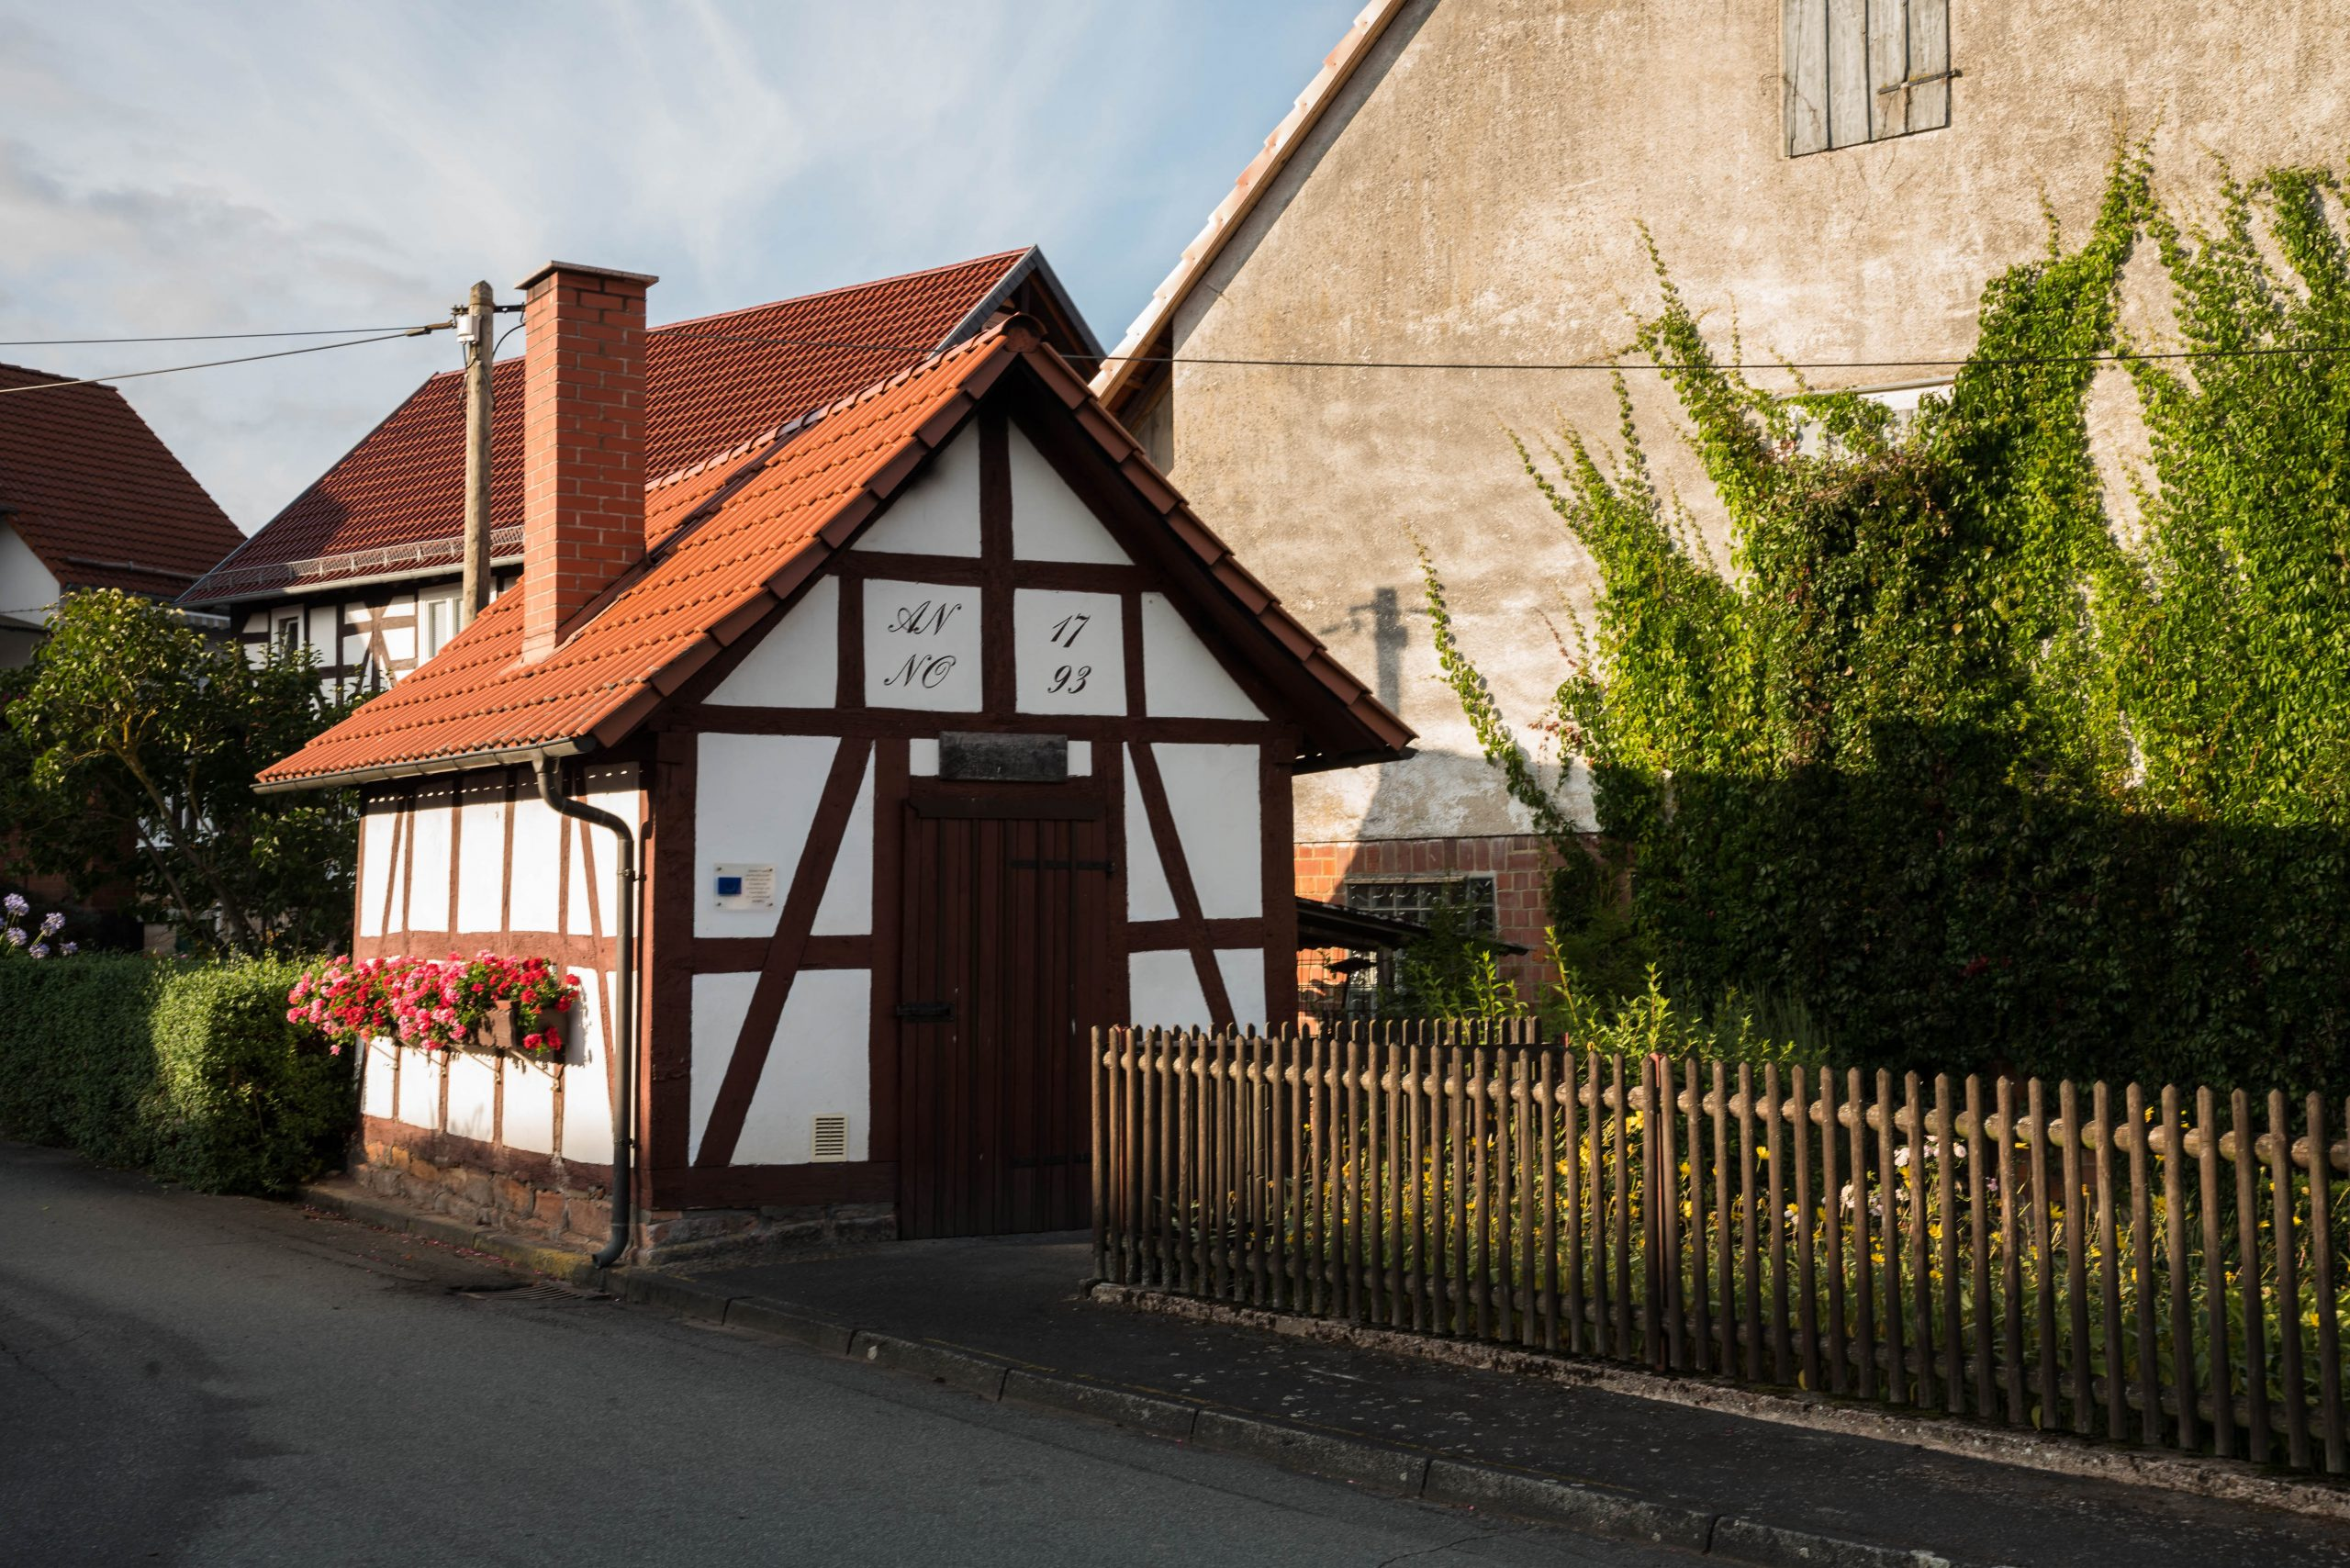 Backhaus in Hainrode